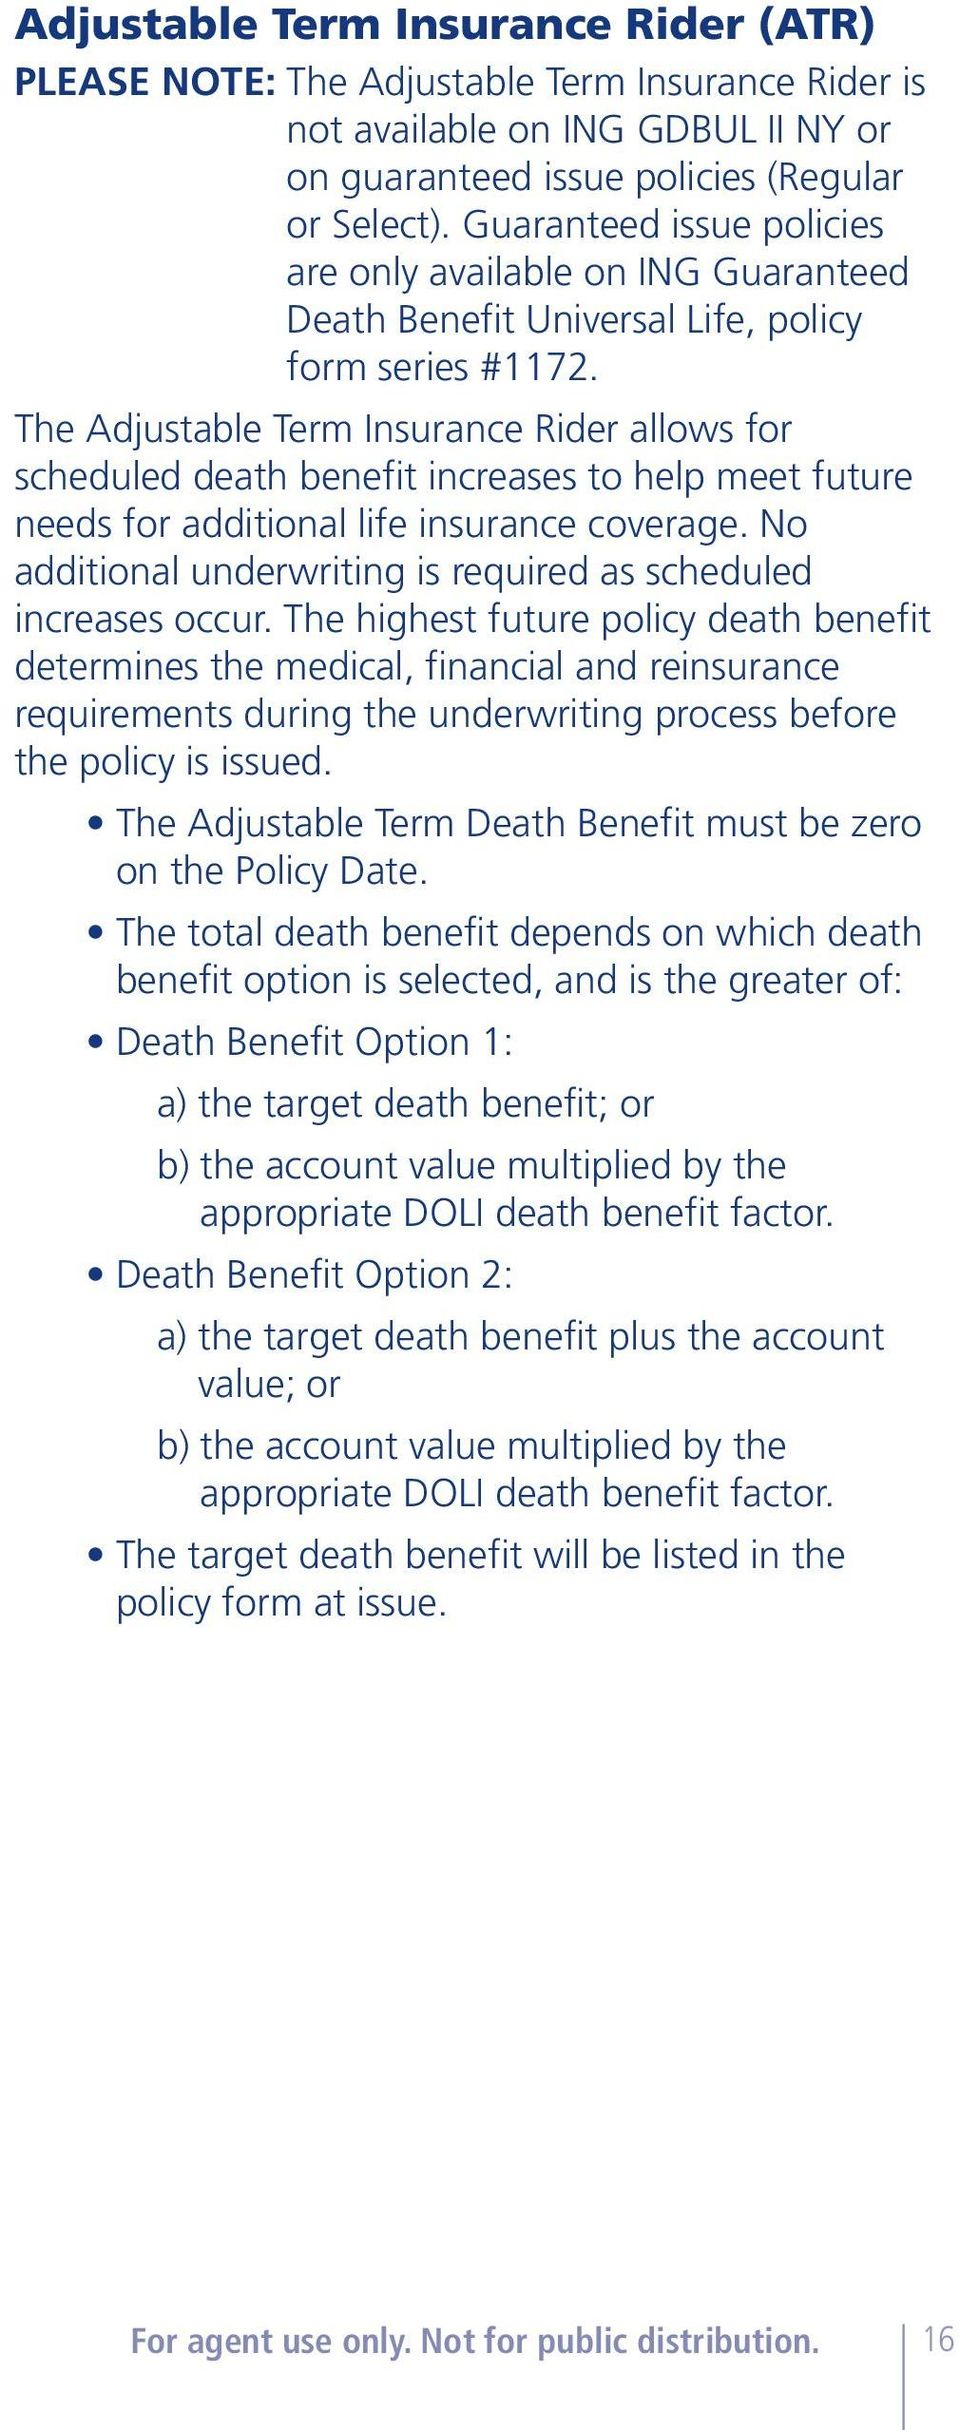 The Adjustable Term Insurance Rider allows for scheduled death benefit increases to help meet future needs for additional life insurance coverage.